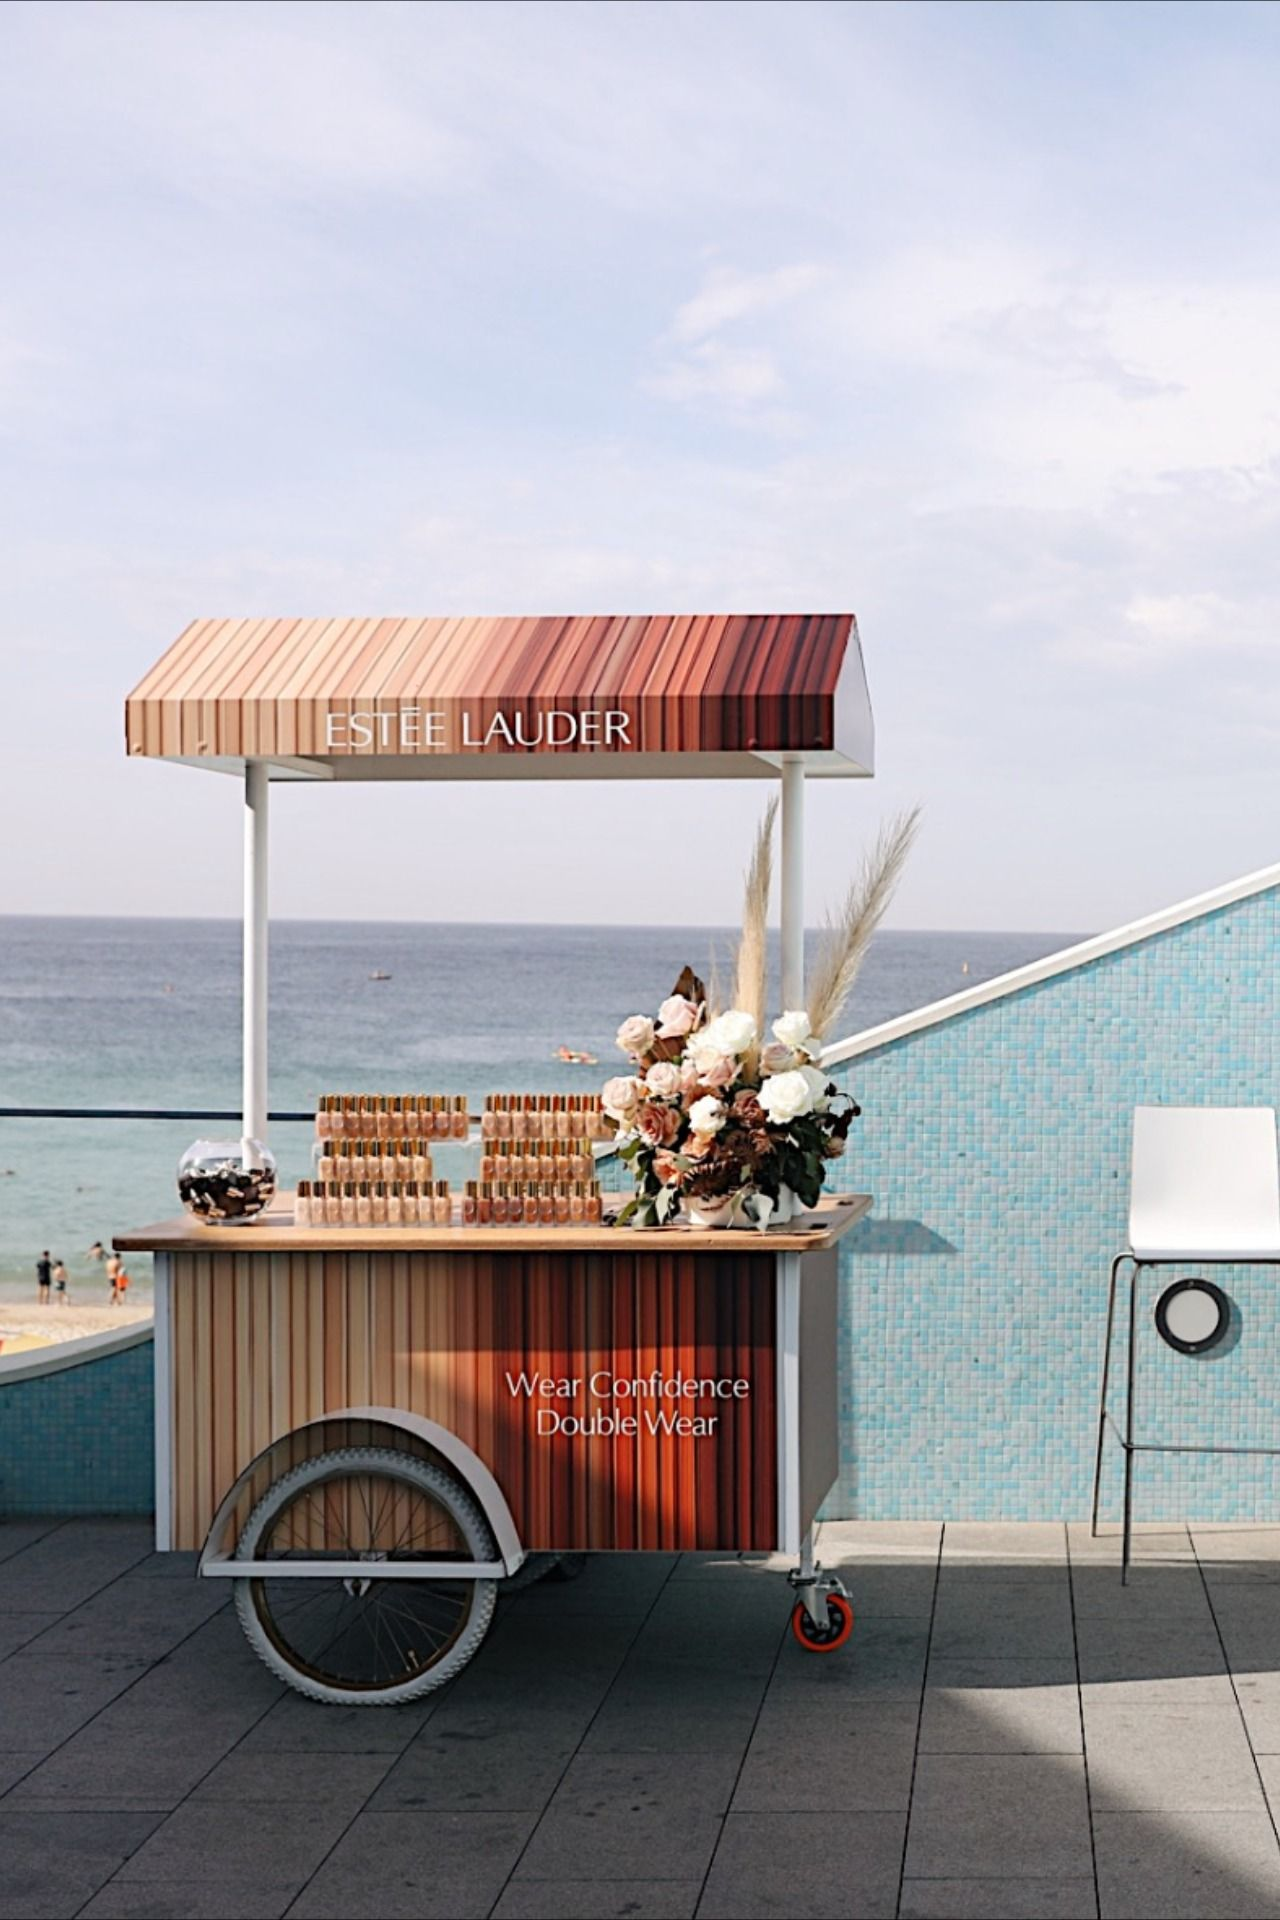 Our fully branded canopy carts for Estee Lauder new foundation launch at Bondi Beach. We created customised smoothies for this event to match the new range colours. #event #medialaunch #brandactivation #brandevent #eventcatering